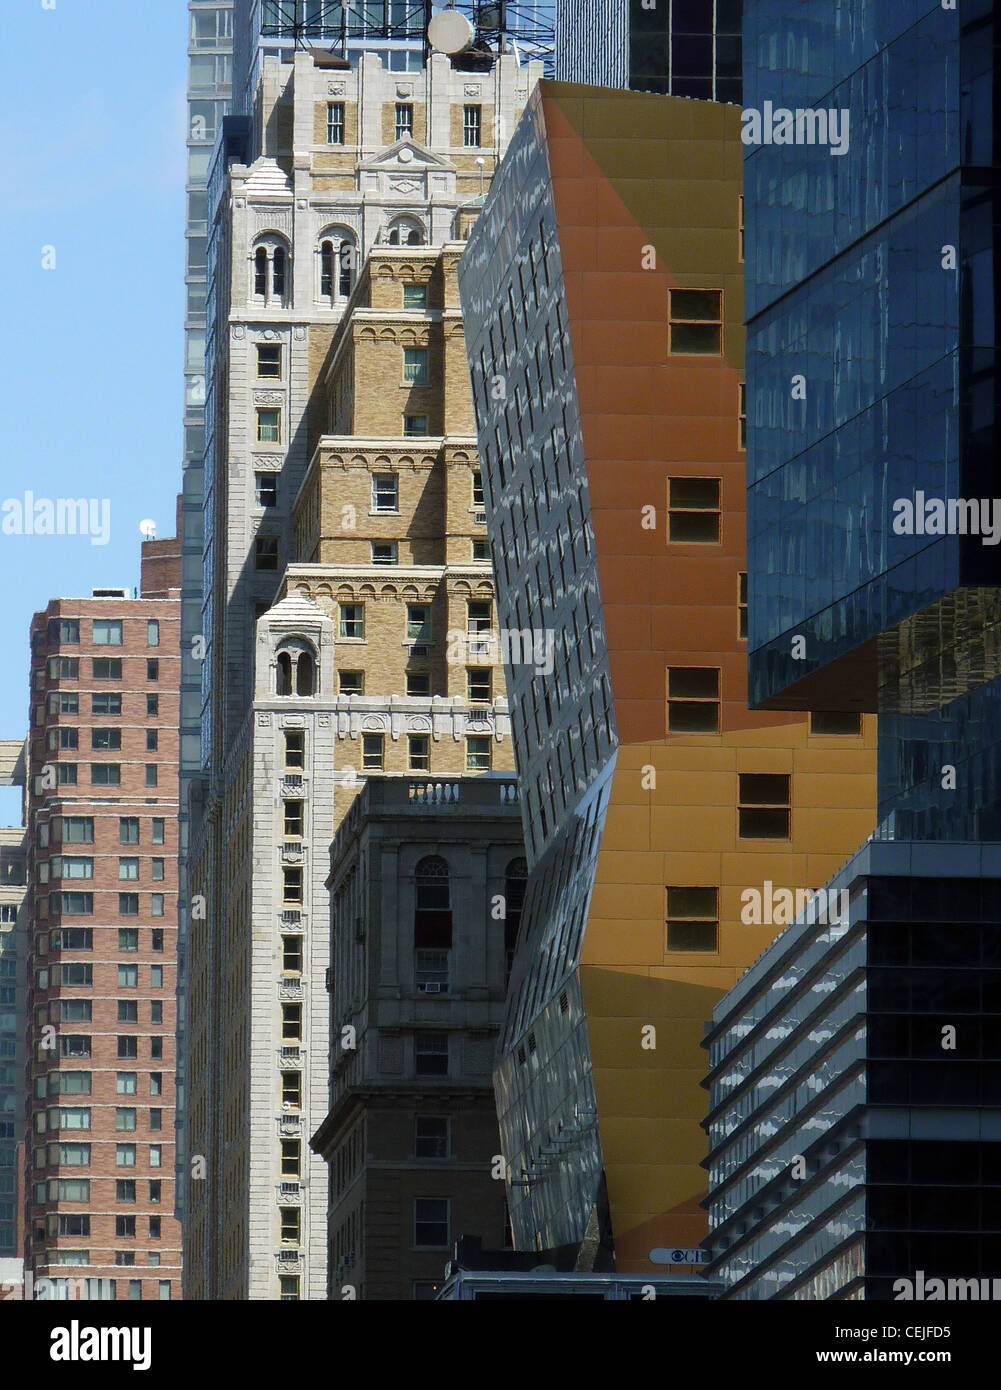 Old and new facades on 42nd street in Manhattan, New York - Stock Image